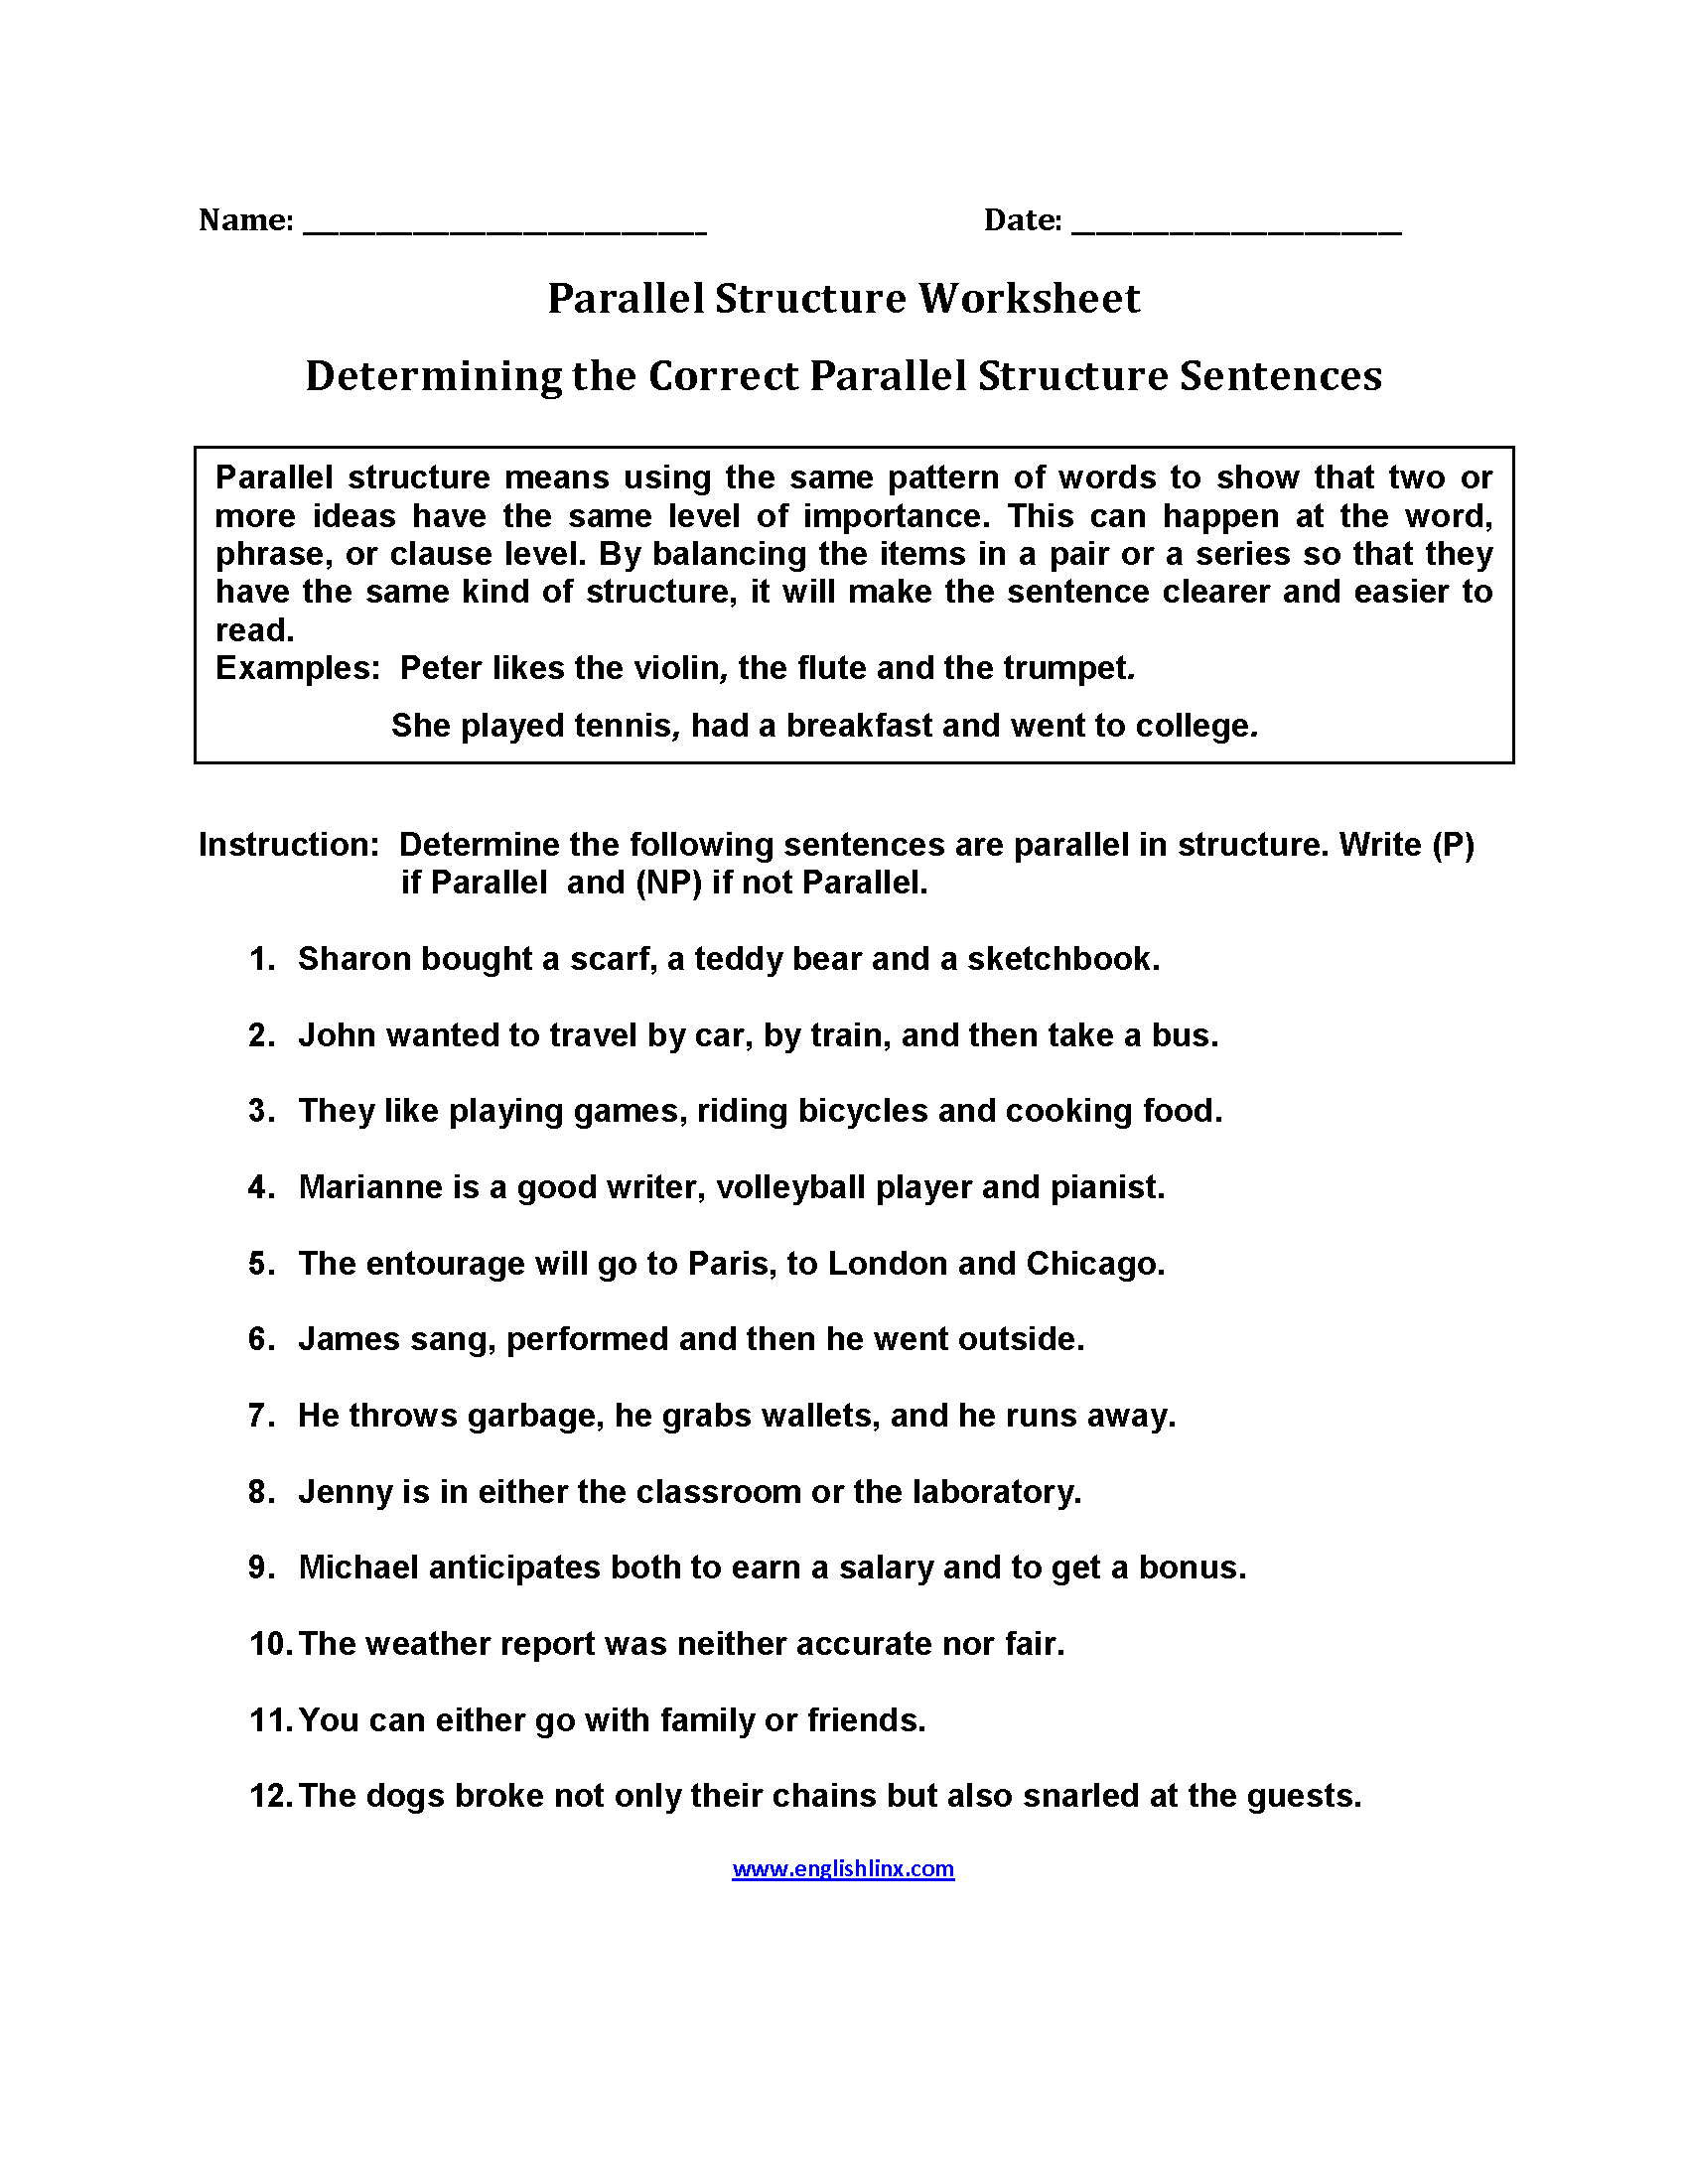 worksheet September 11 Worksheets englishlinx com parallel structure worksheets worksheets